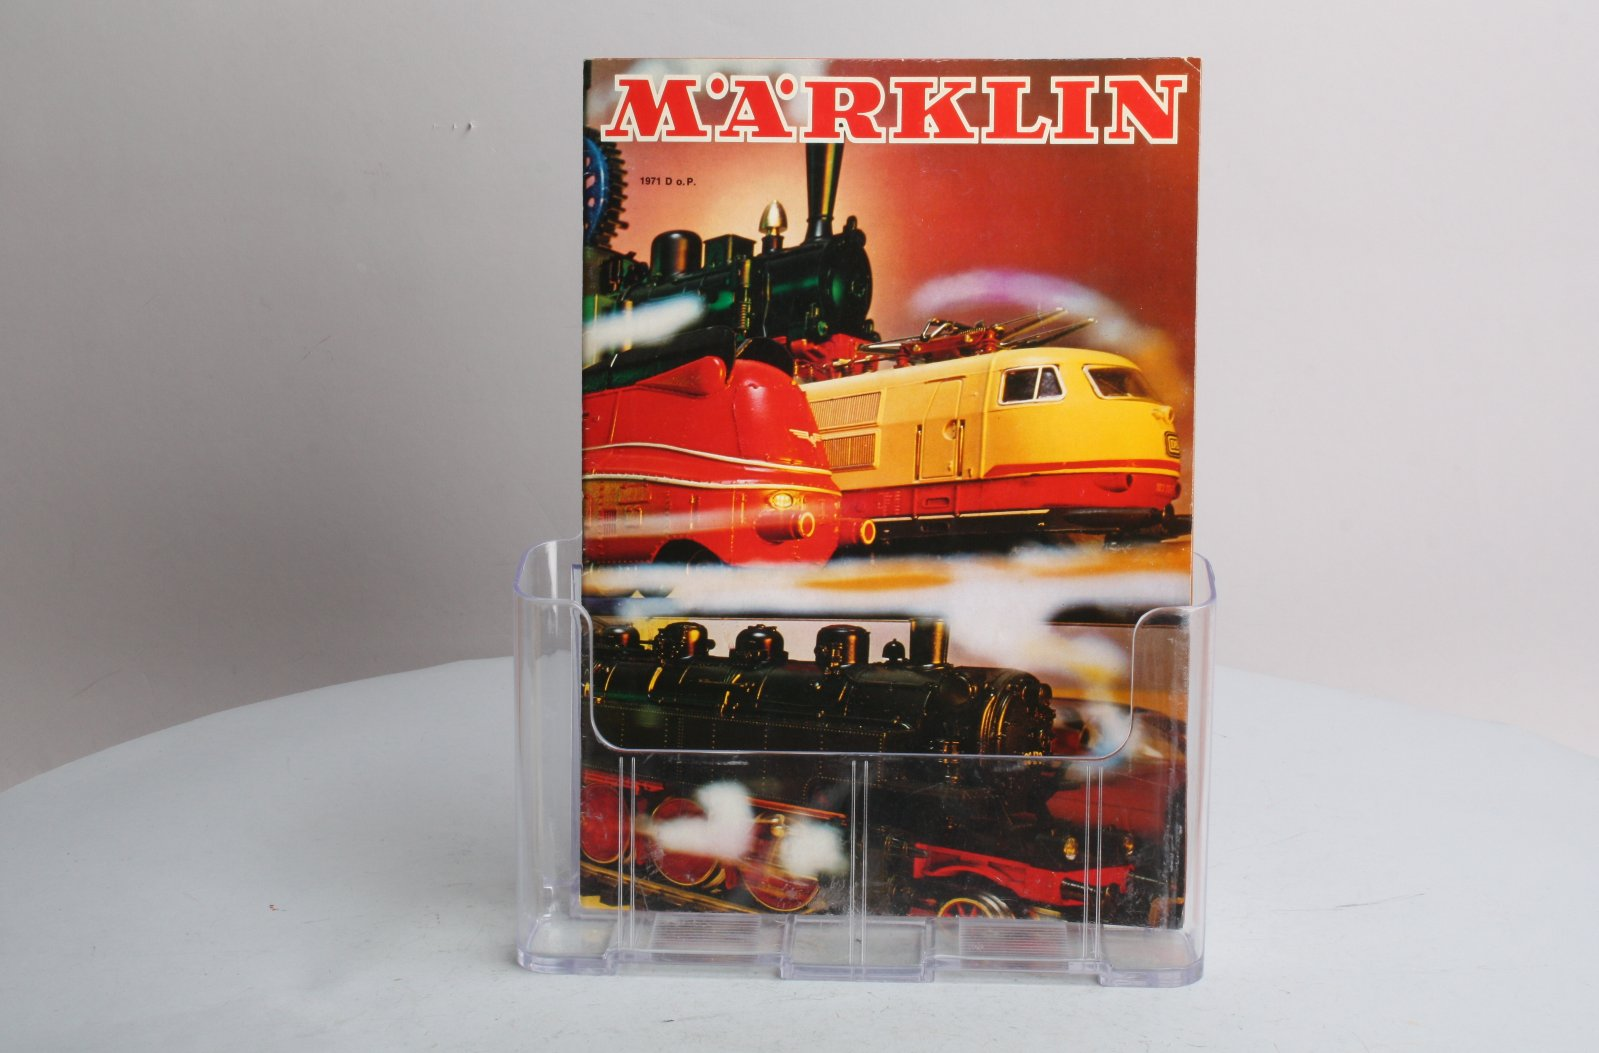 Buy Marklin 1971 Product Catalog | Trainz Auctions